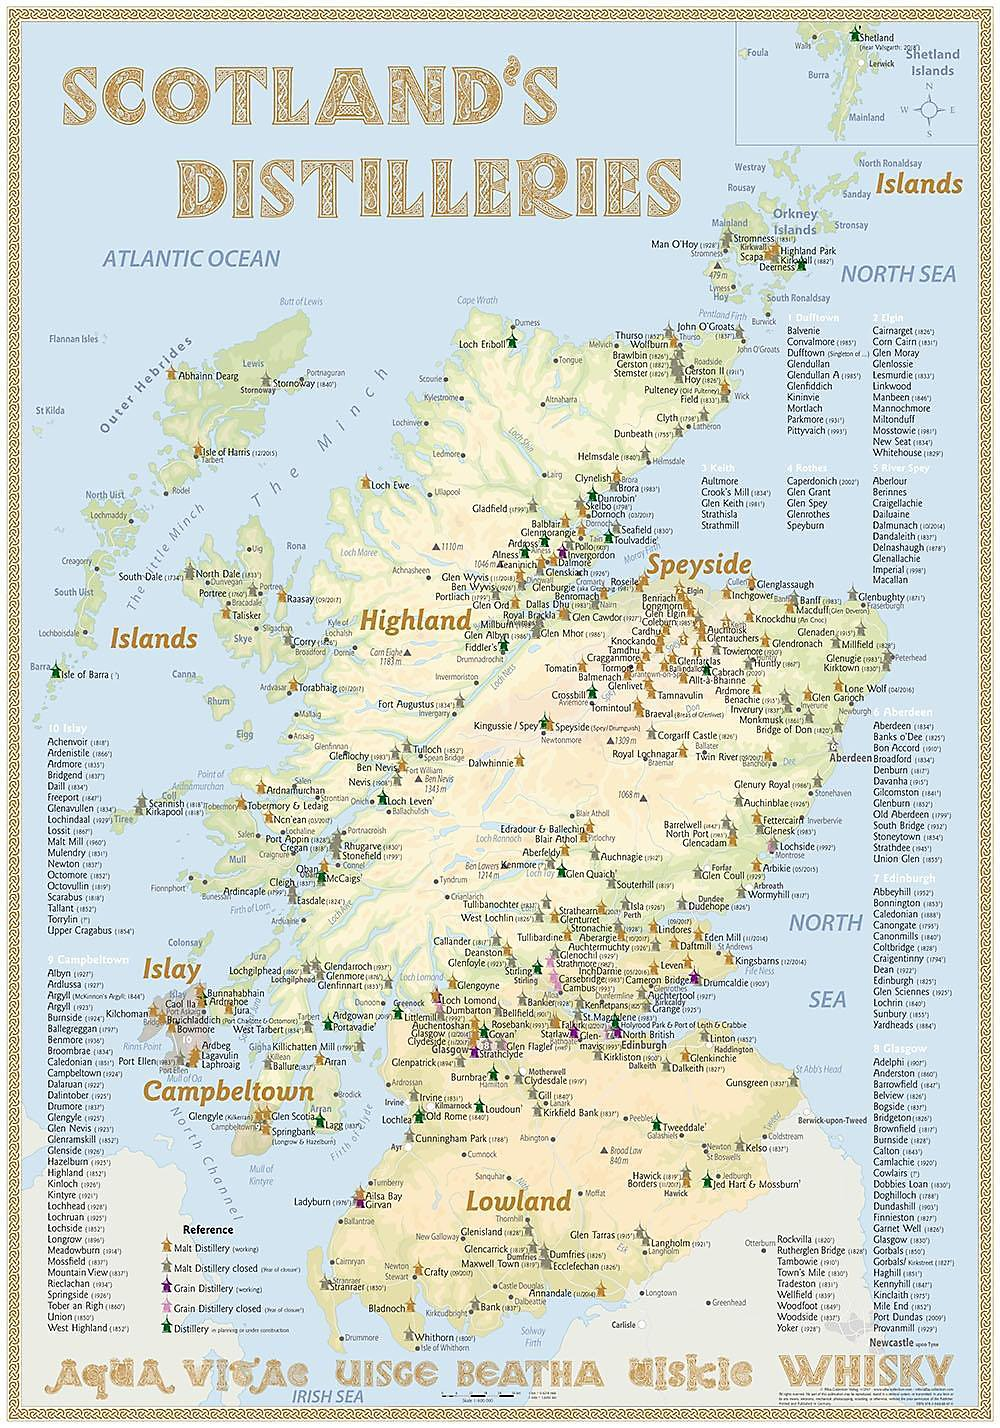 Whisky Karte Schottland.Whisky Distilleries Scotland Poster 70x100cm Standard Edition